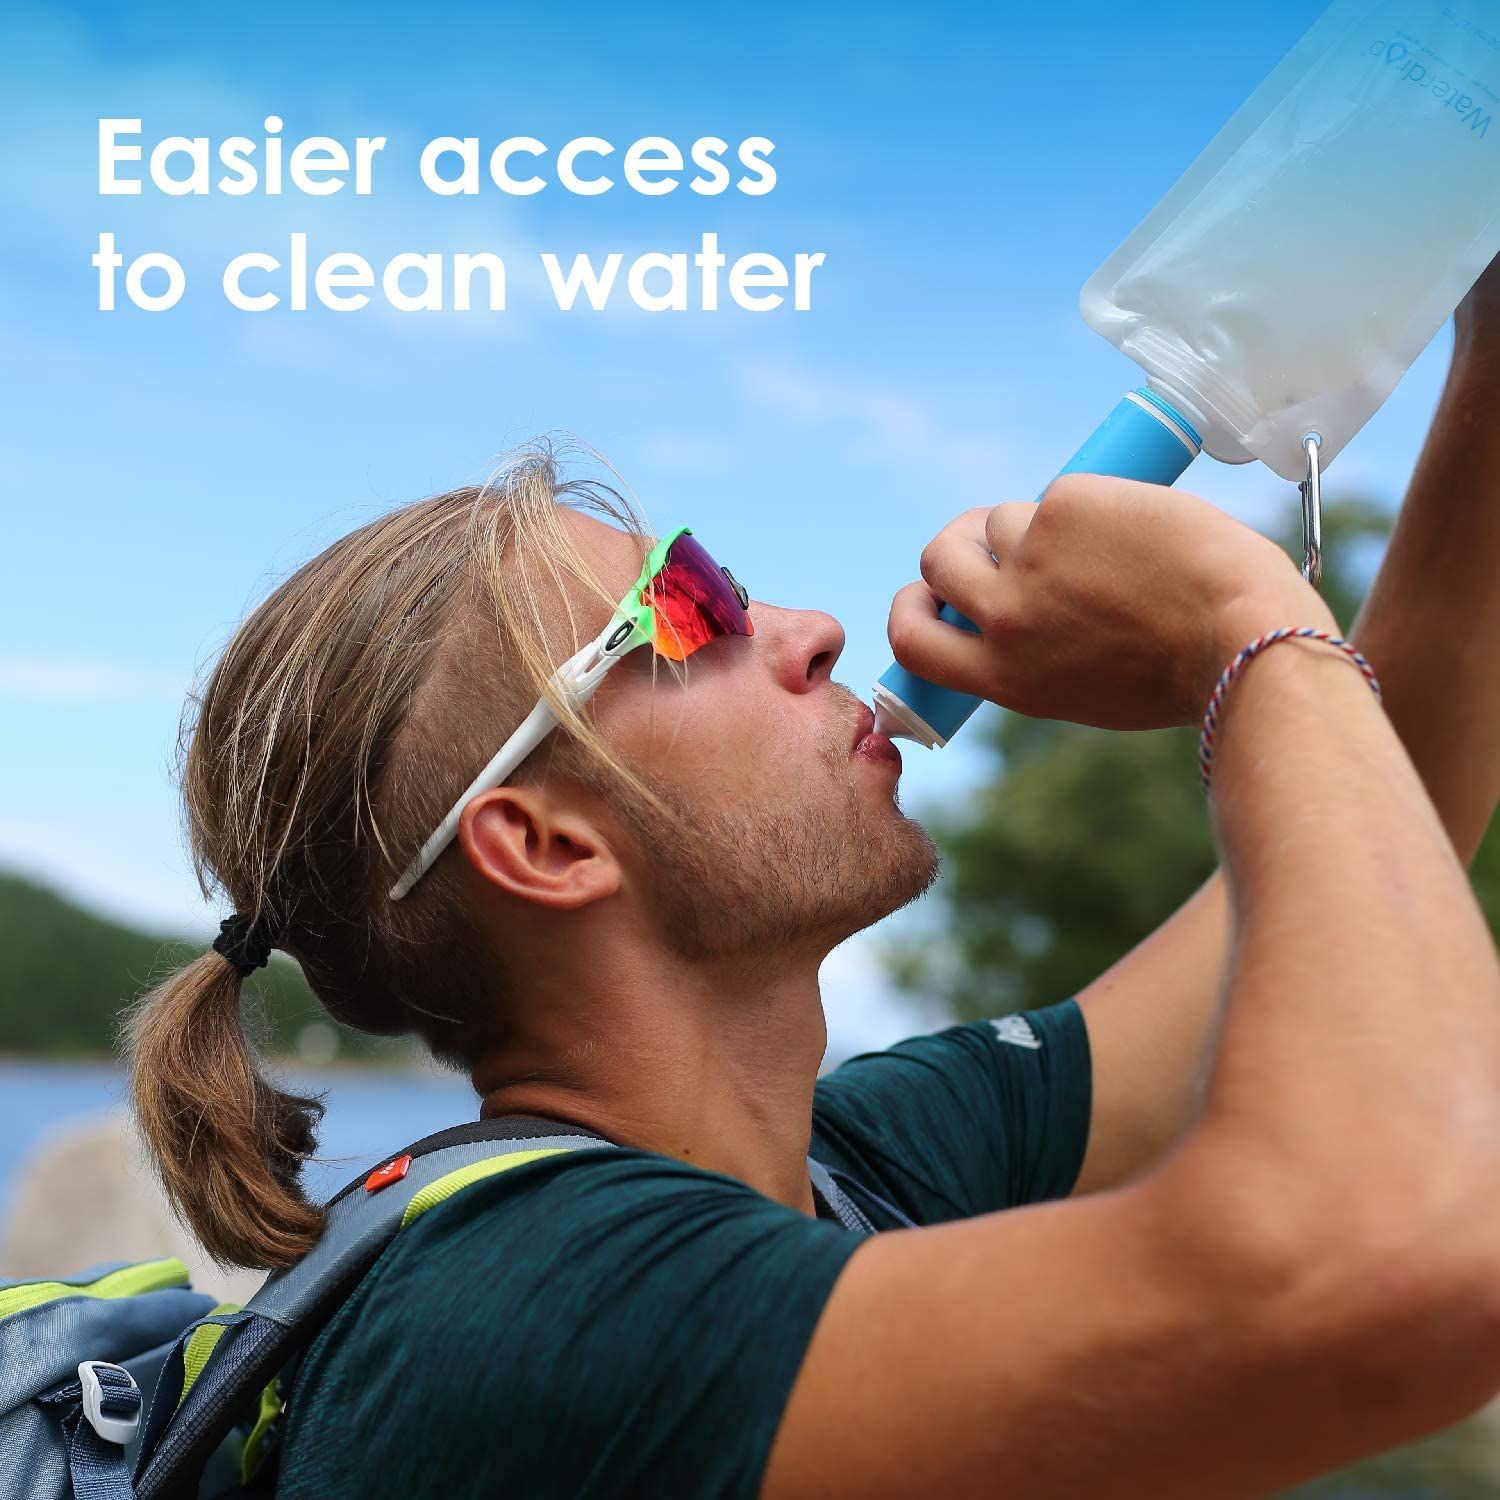 Waterdrop Water Filter Straw, Portable Camping Filtration System, Drinking Water Purifier for Emergency Hiking Travel Backpacking, Pack of 3 : Sports & Outdoors